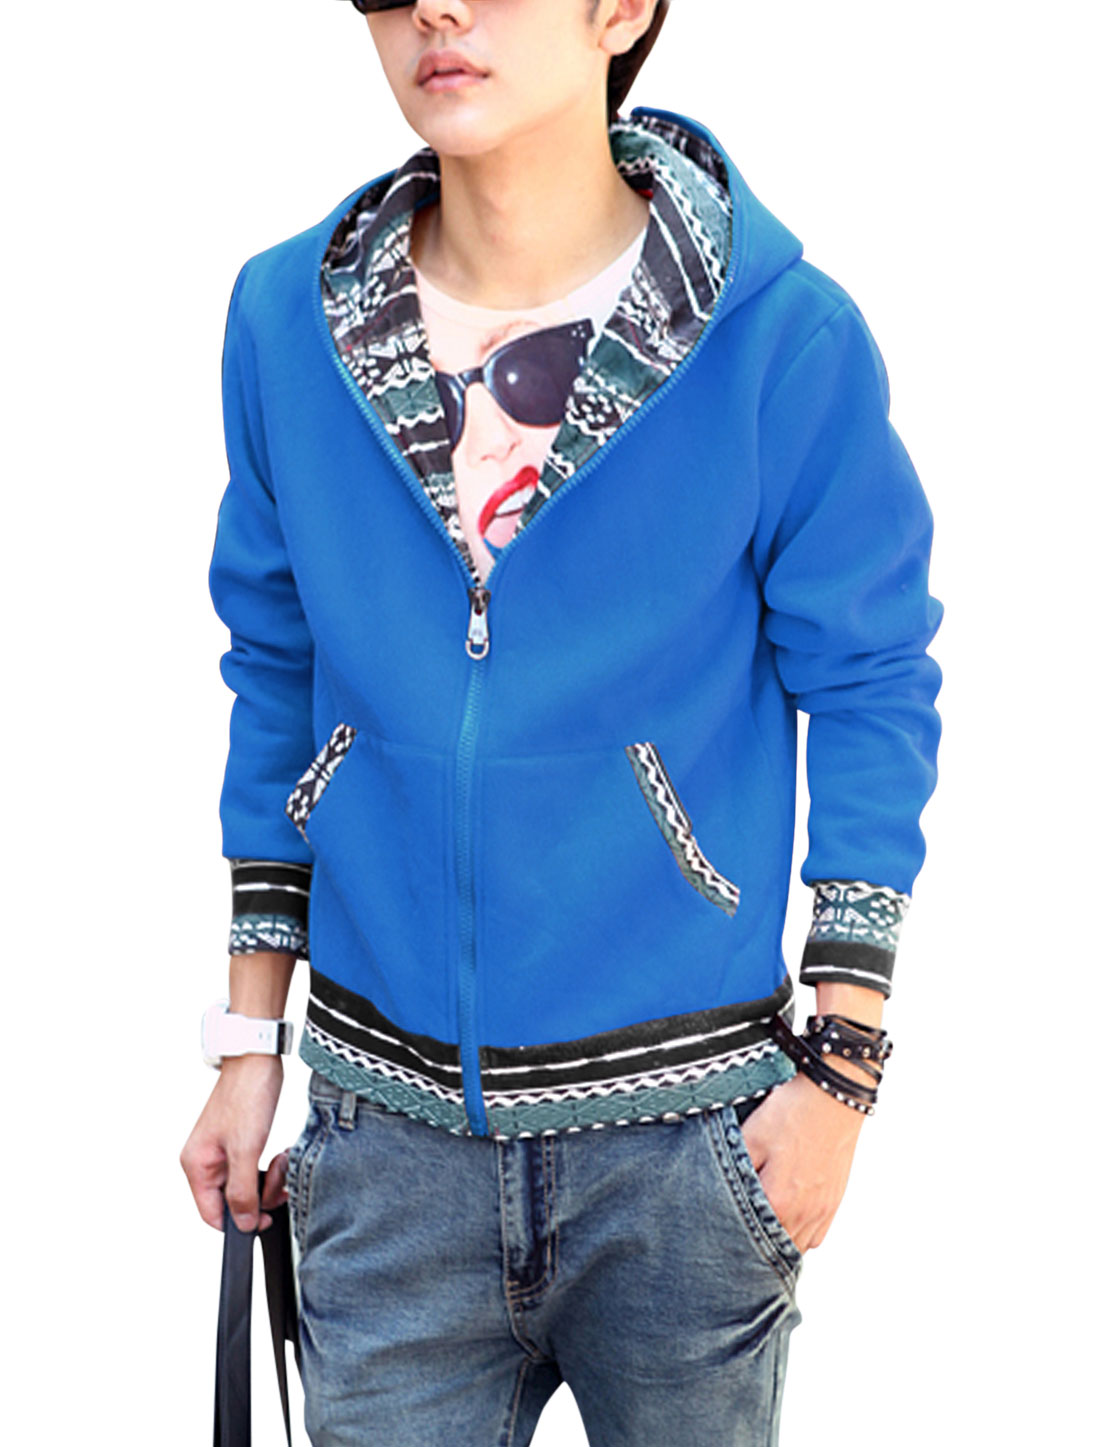 Man Geometric Prints Panel Design Zip Up Basic Hooded Jacket Blue M